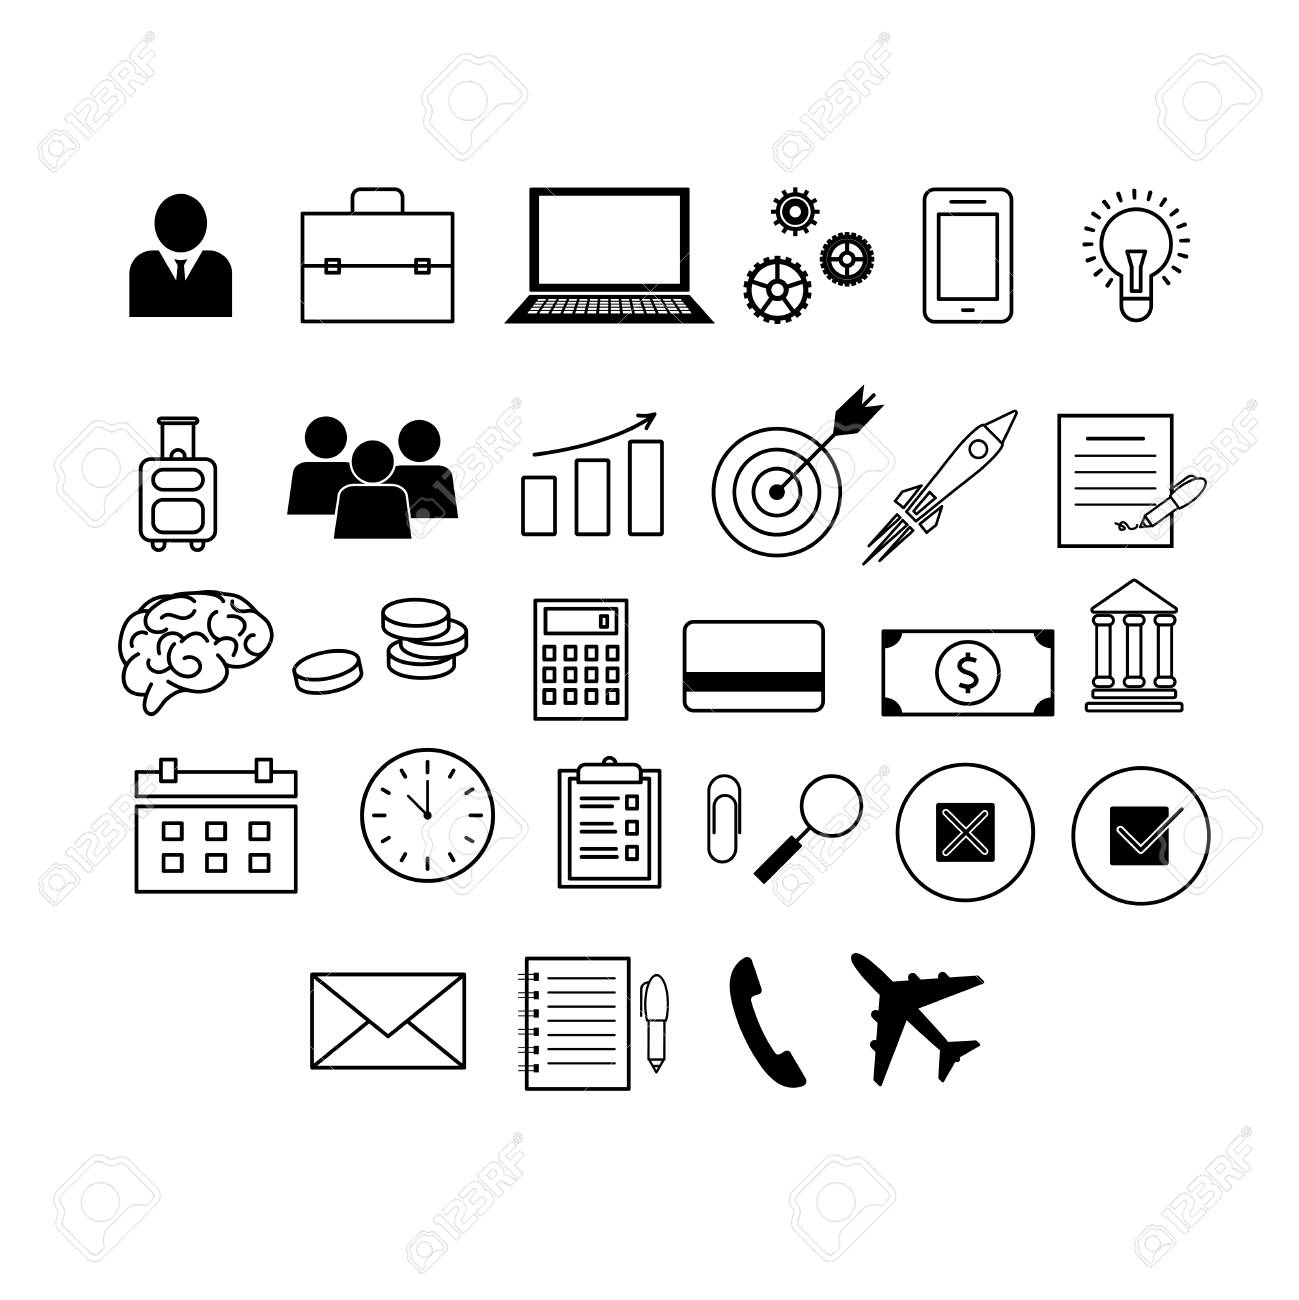 Vector icons on business and finance theme. - 127383156